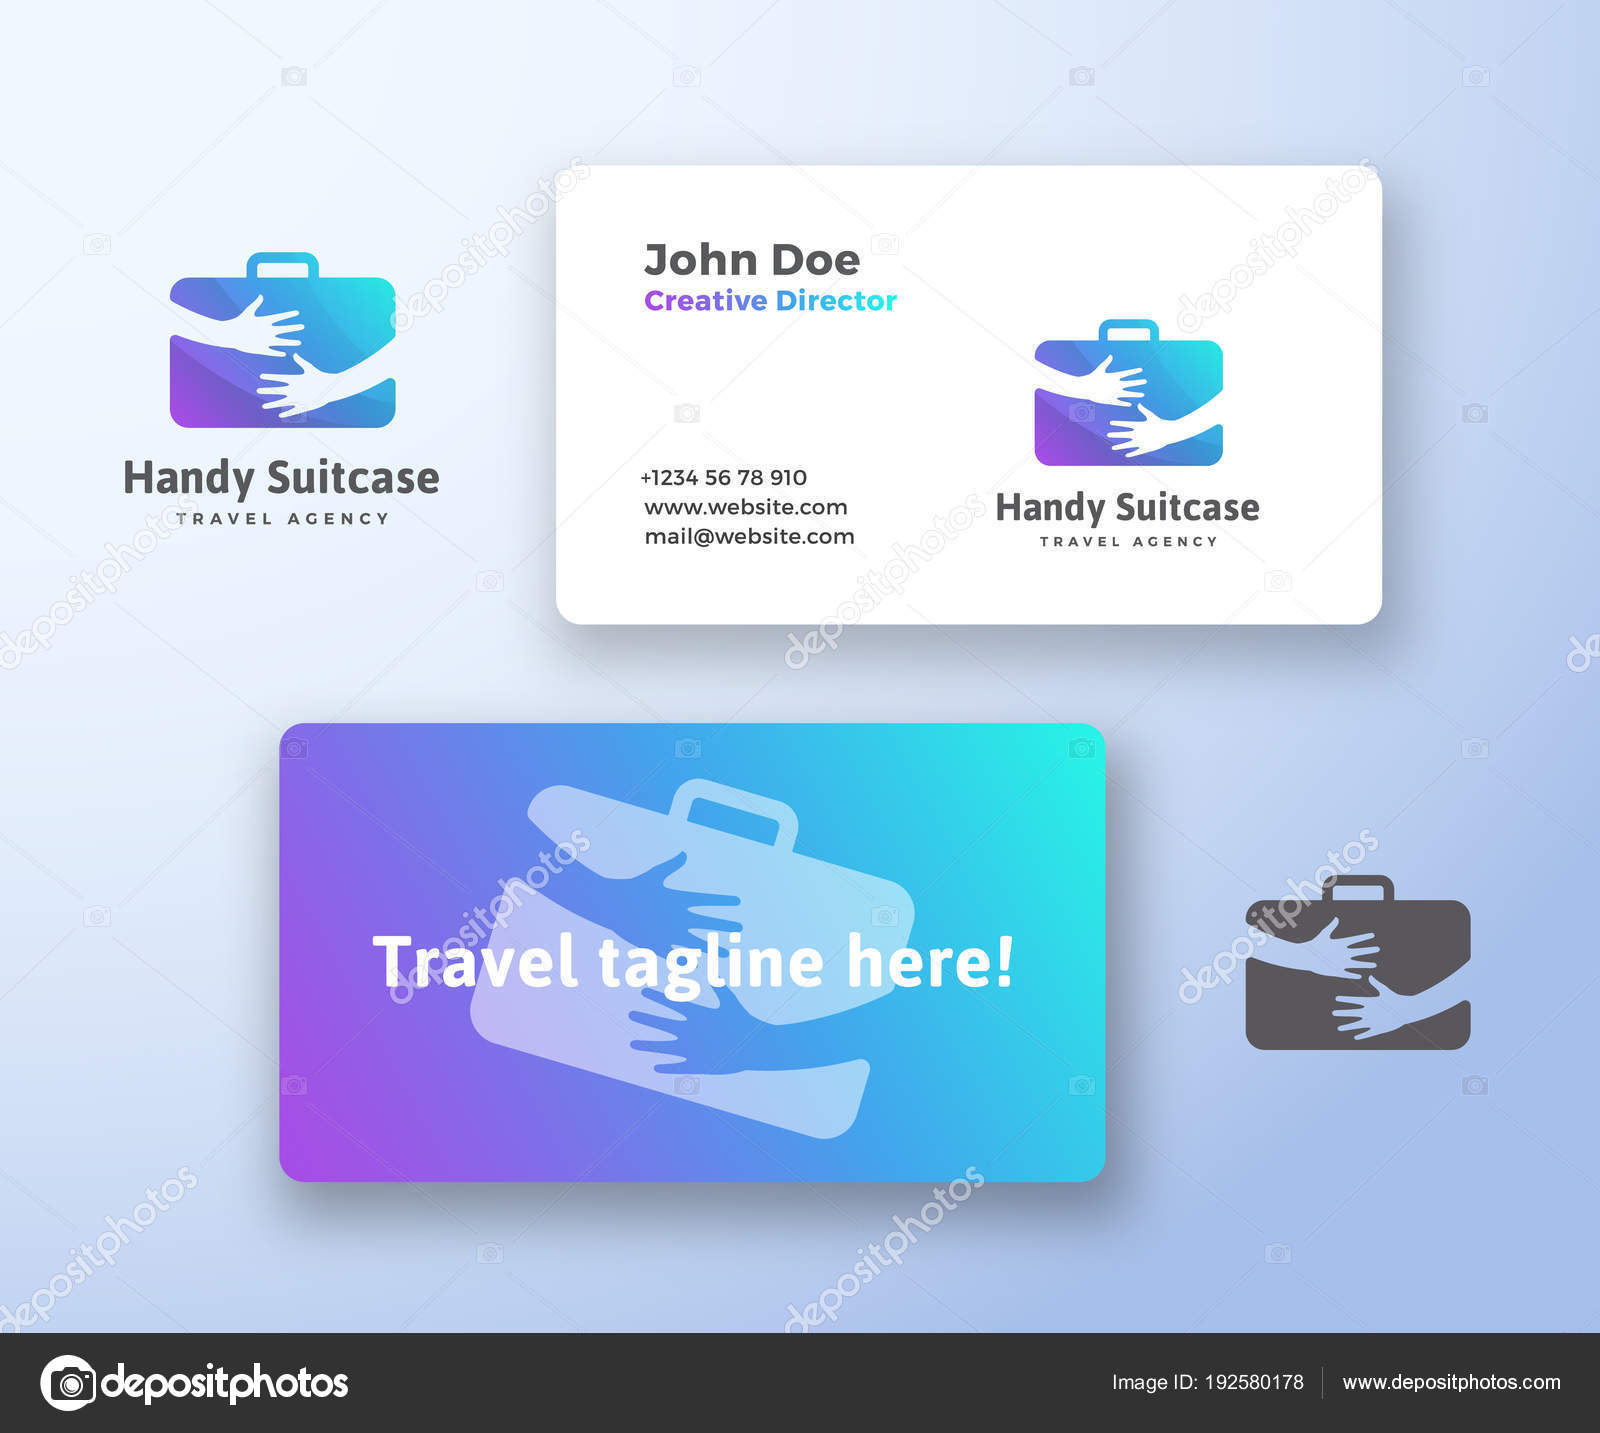 Handy Suitcase Travel Agency Abstract Vector Sign, Symbol or Logo ...